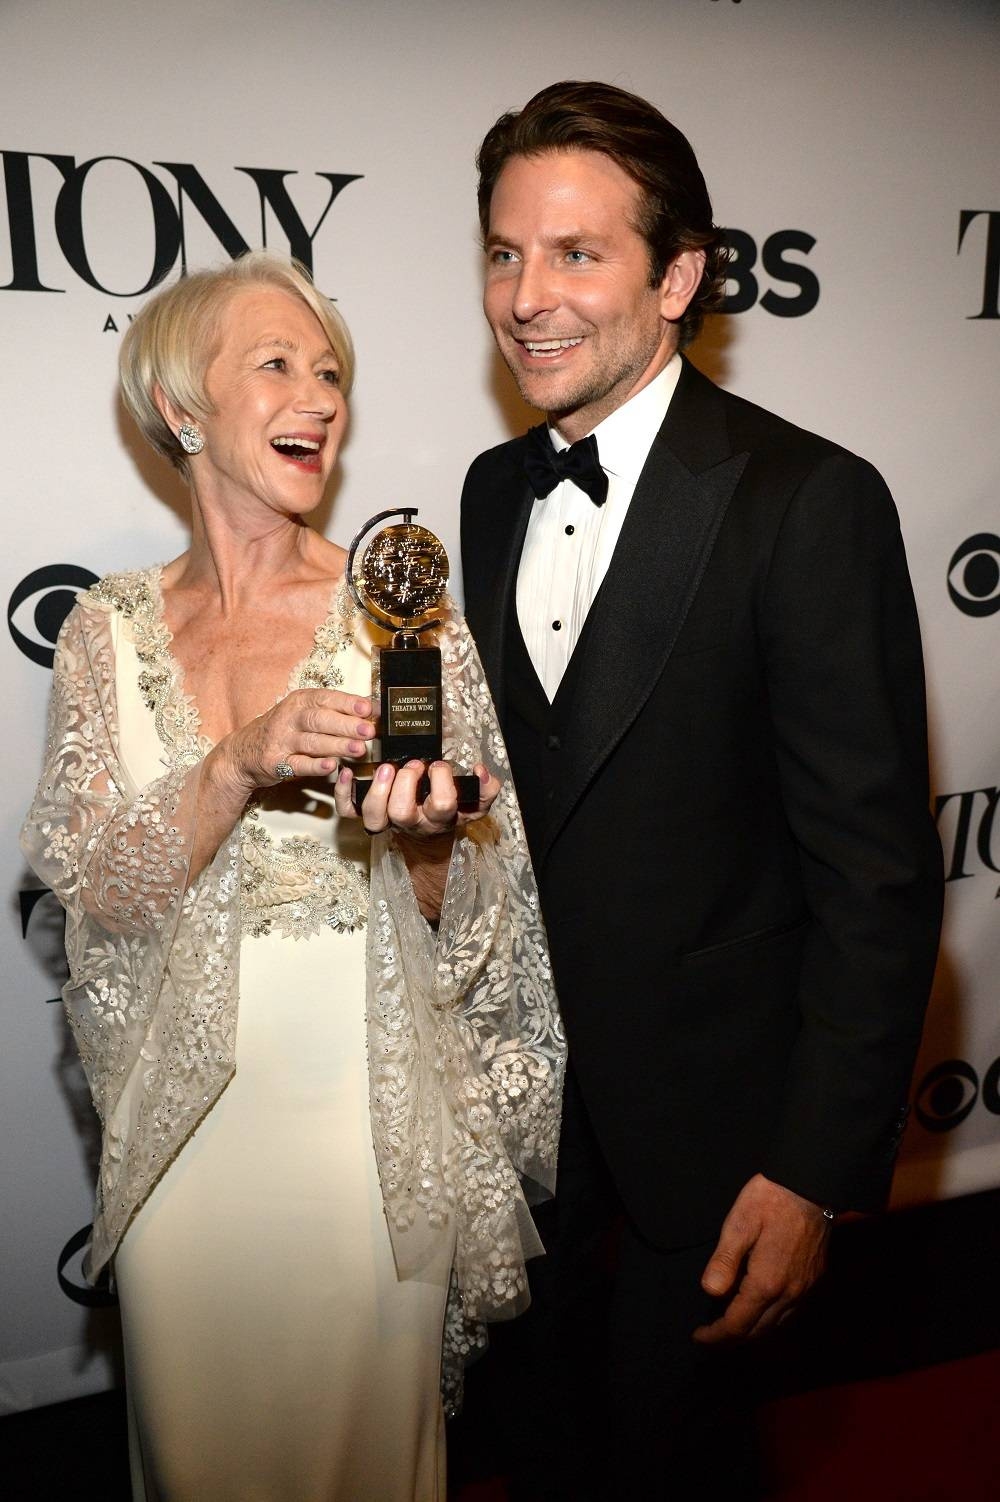 NEW YORK, NY - JUNE 07:  Helen Mirren and Bradley Cooper attend the 2015 Tony Awards at Radio City Music Hall on June 7, 2015 in New York City.  (Photo by Kevin Mazur/Getty Images for Tony Awards Productions)